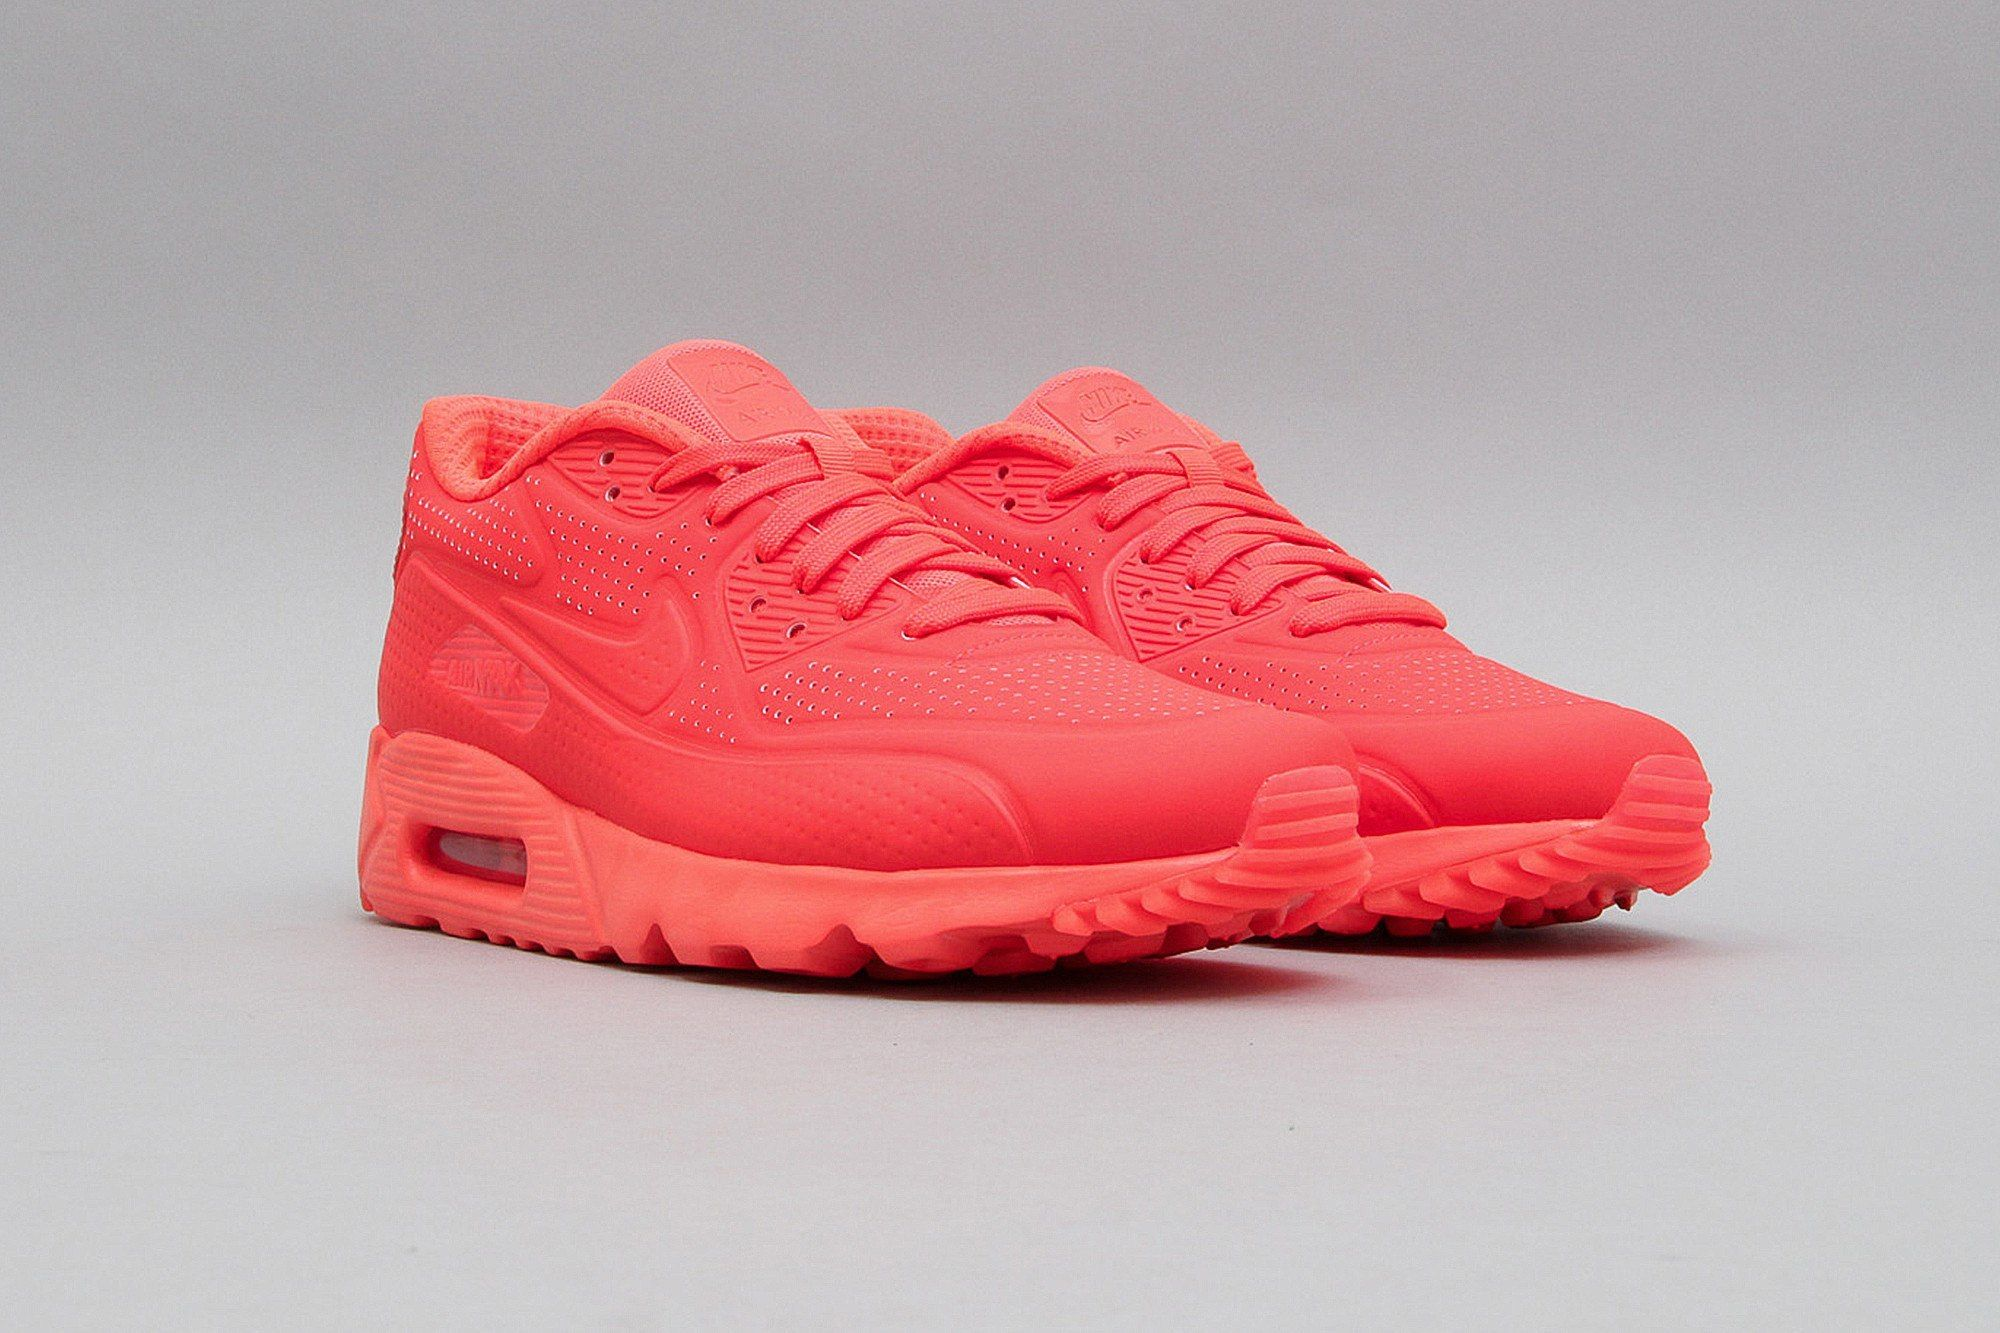 new style f31b5 24ac8 Nike Air Max 90 Ultra Moire Bright Crimson 819477 600 (Neonrot) from B V D  S T